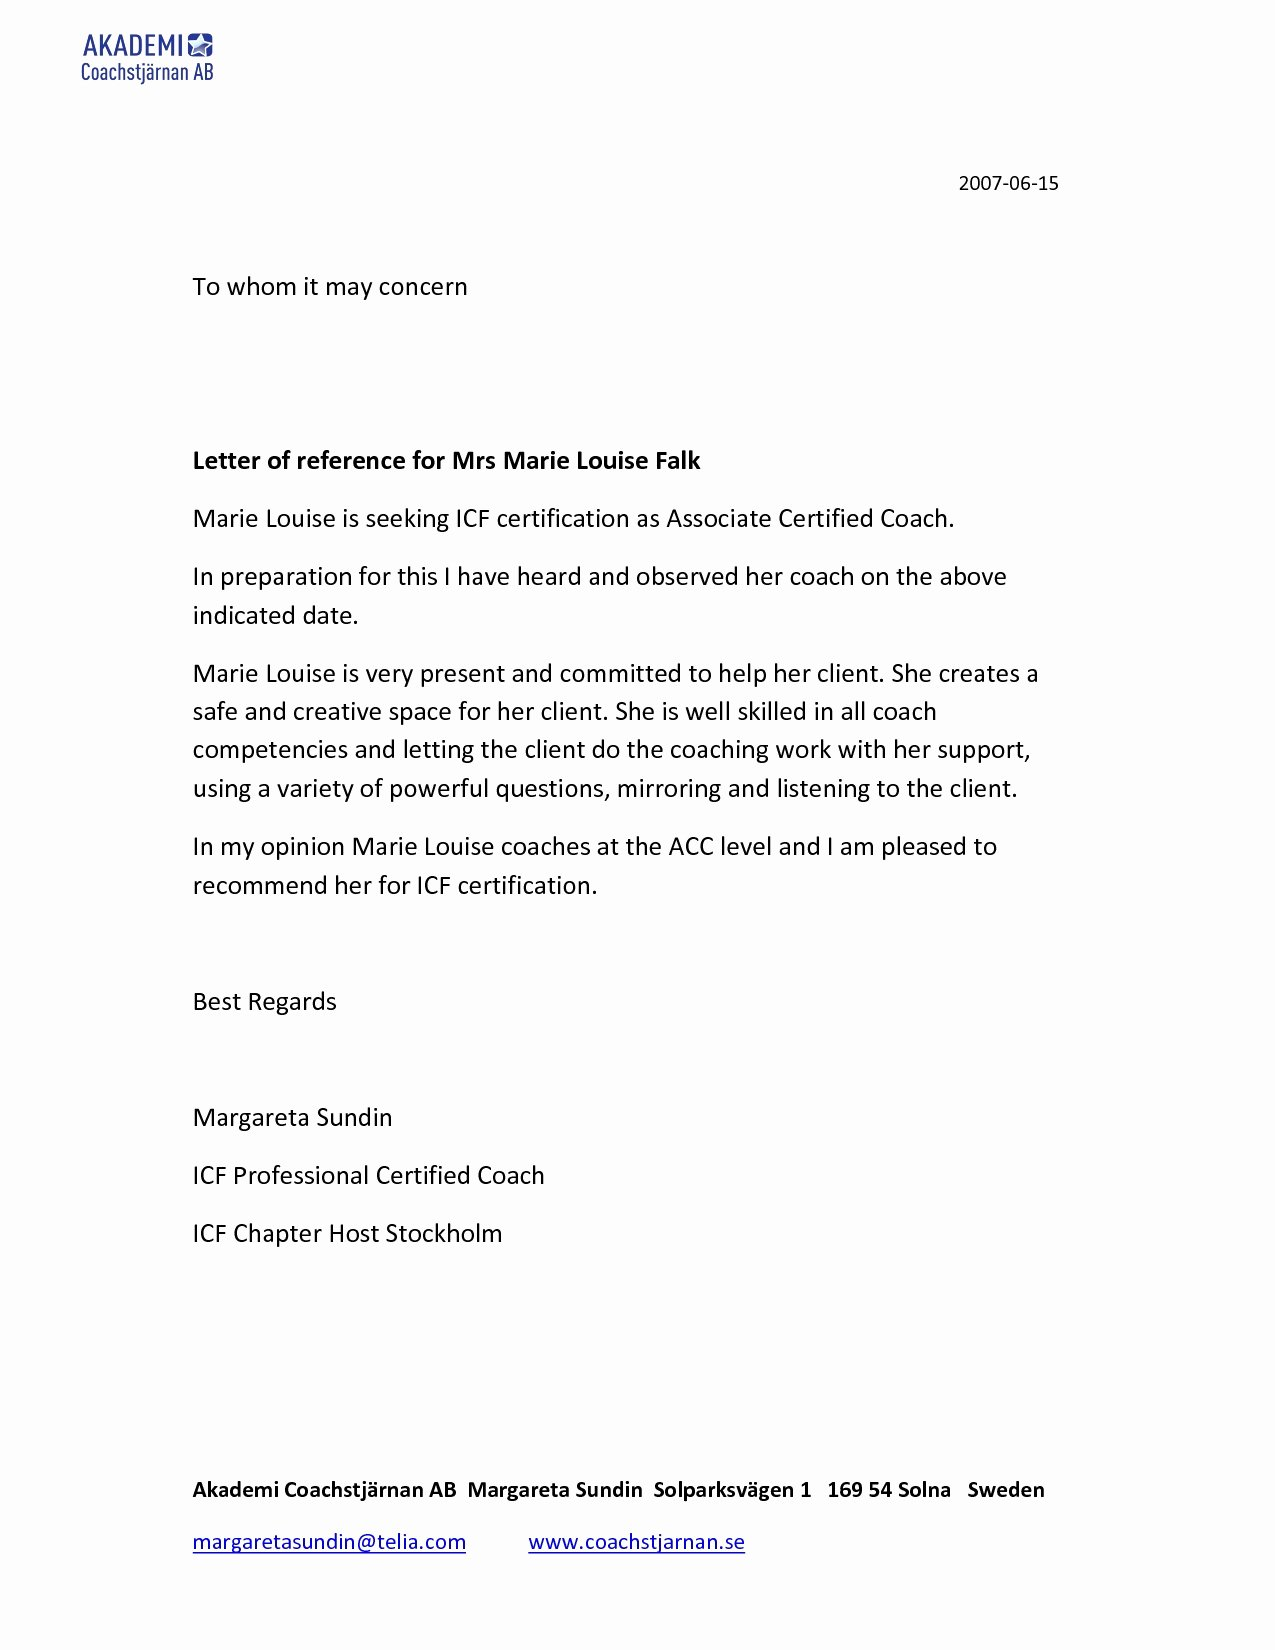 Concerned Letter Sample Inspirational to whom It May Concern Letter